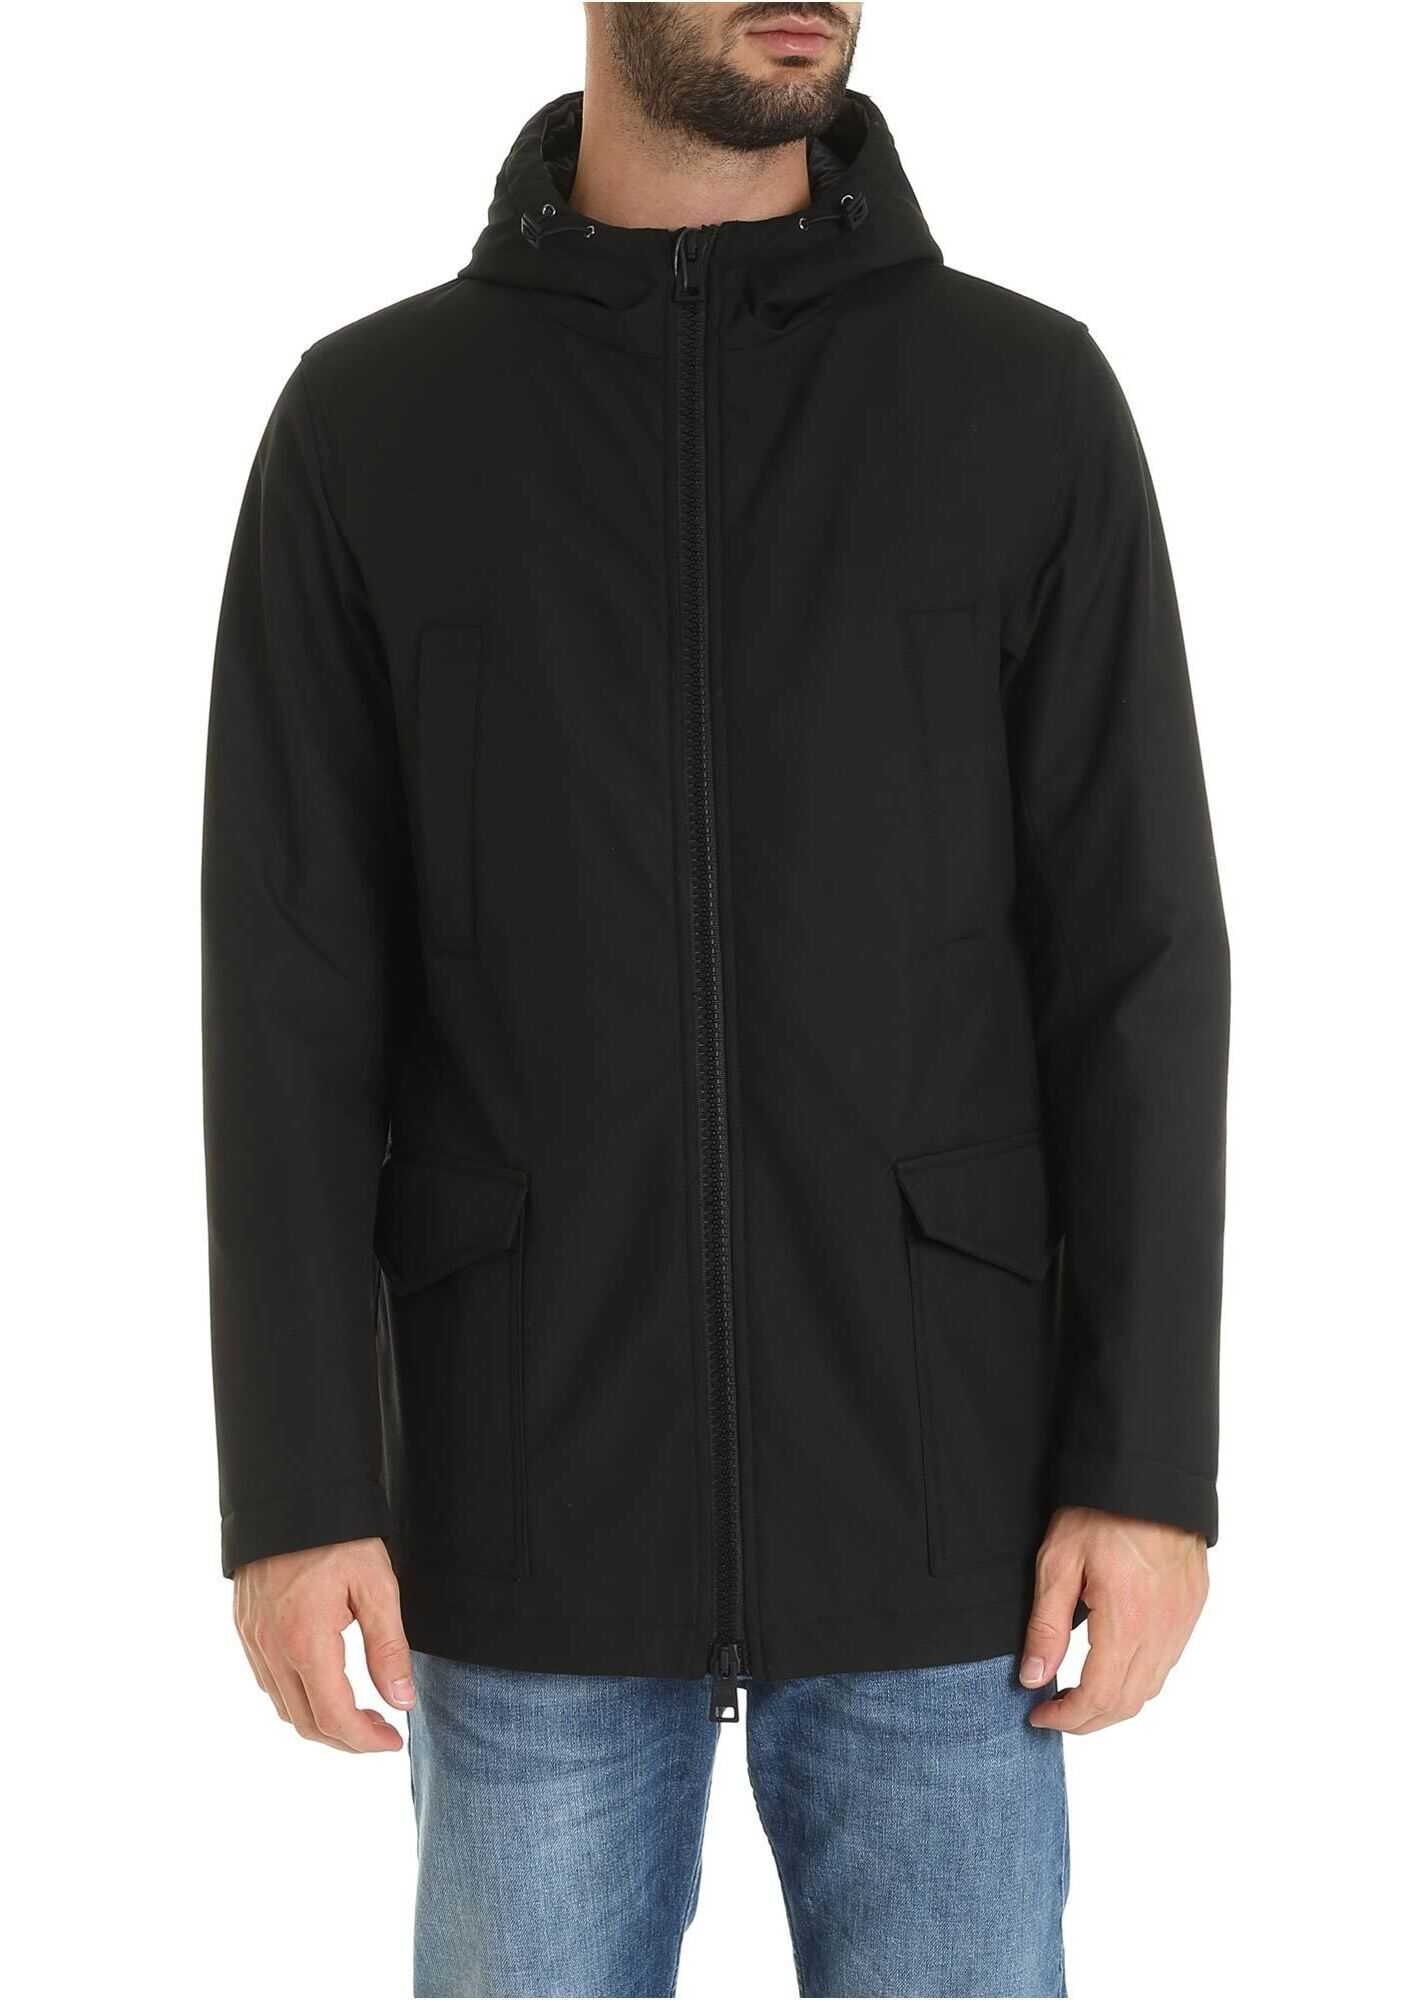 Herno Hoodie Jacket In Black Black imagine